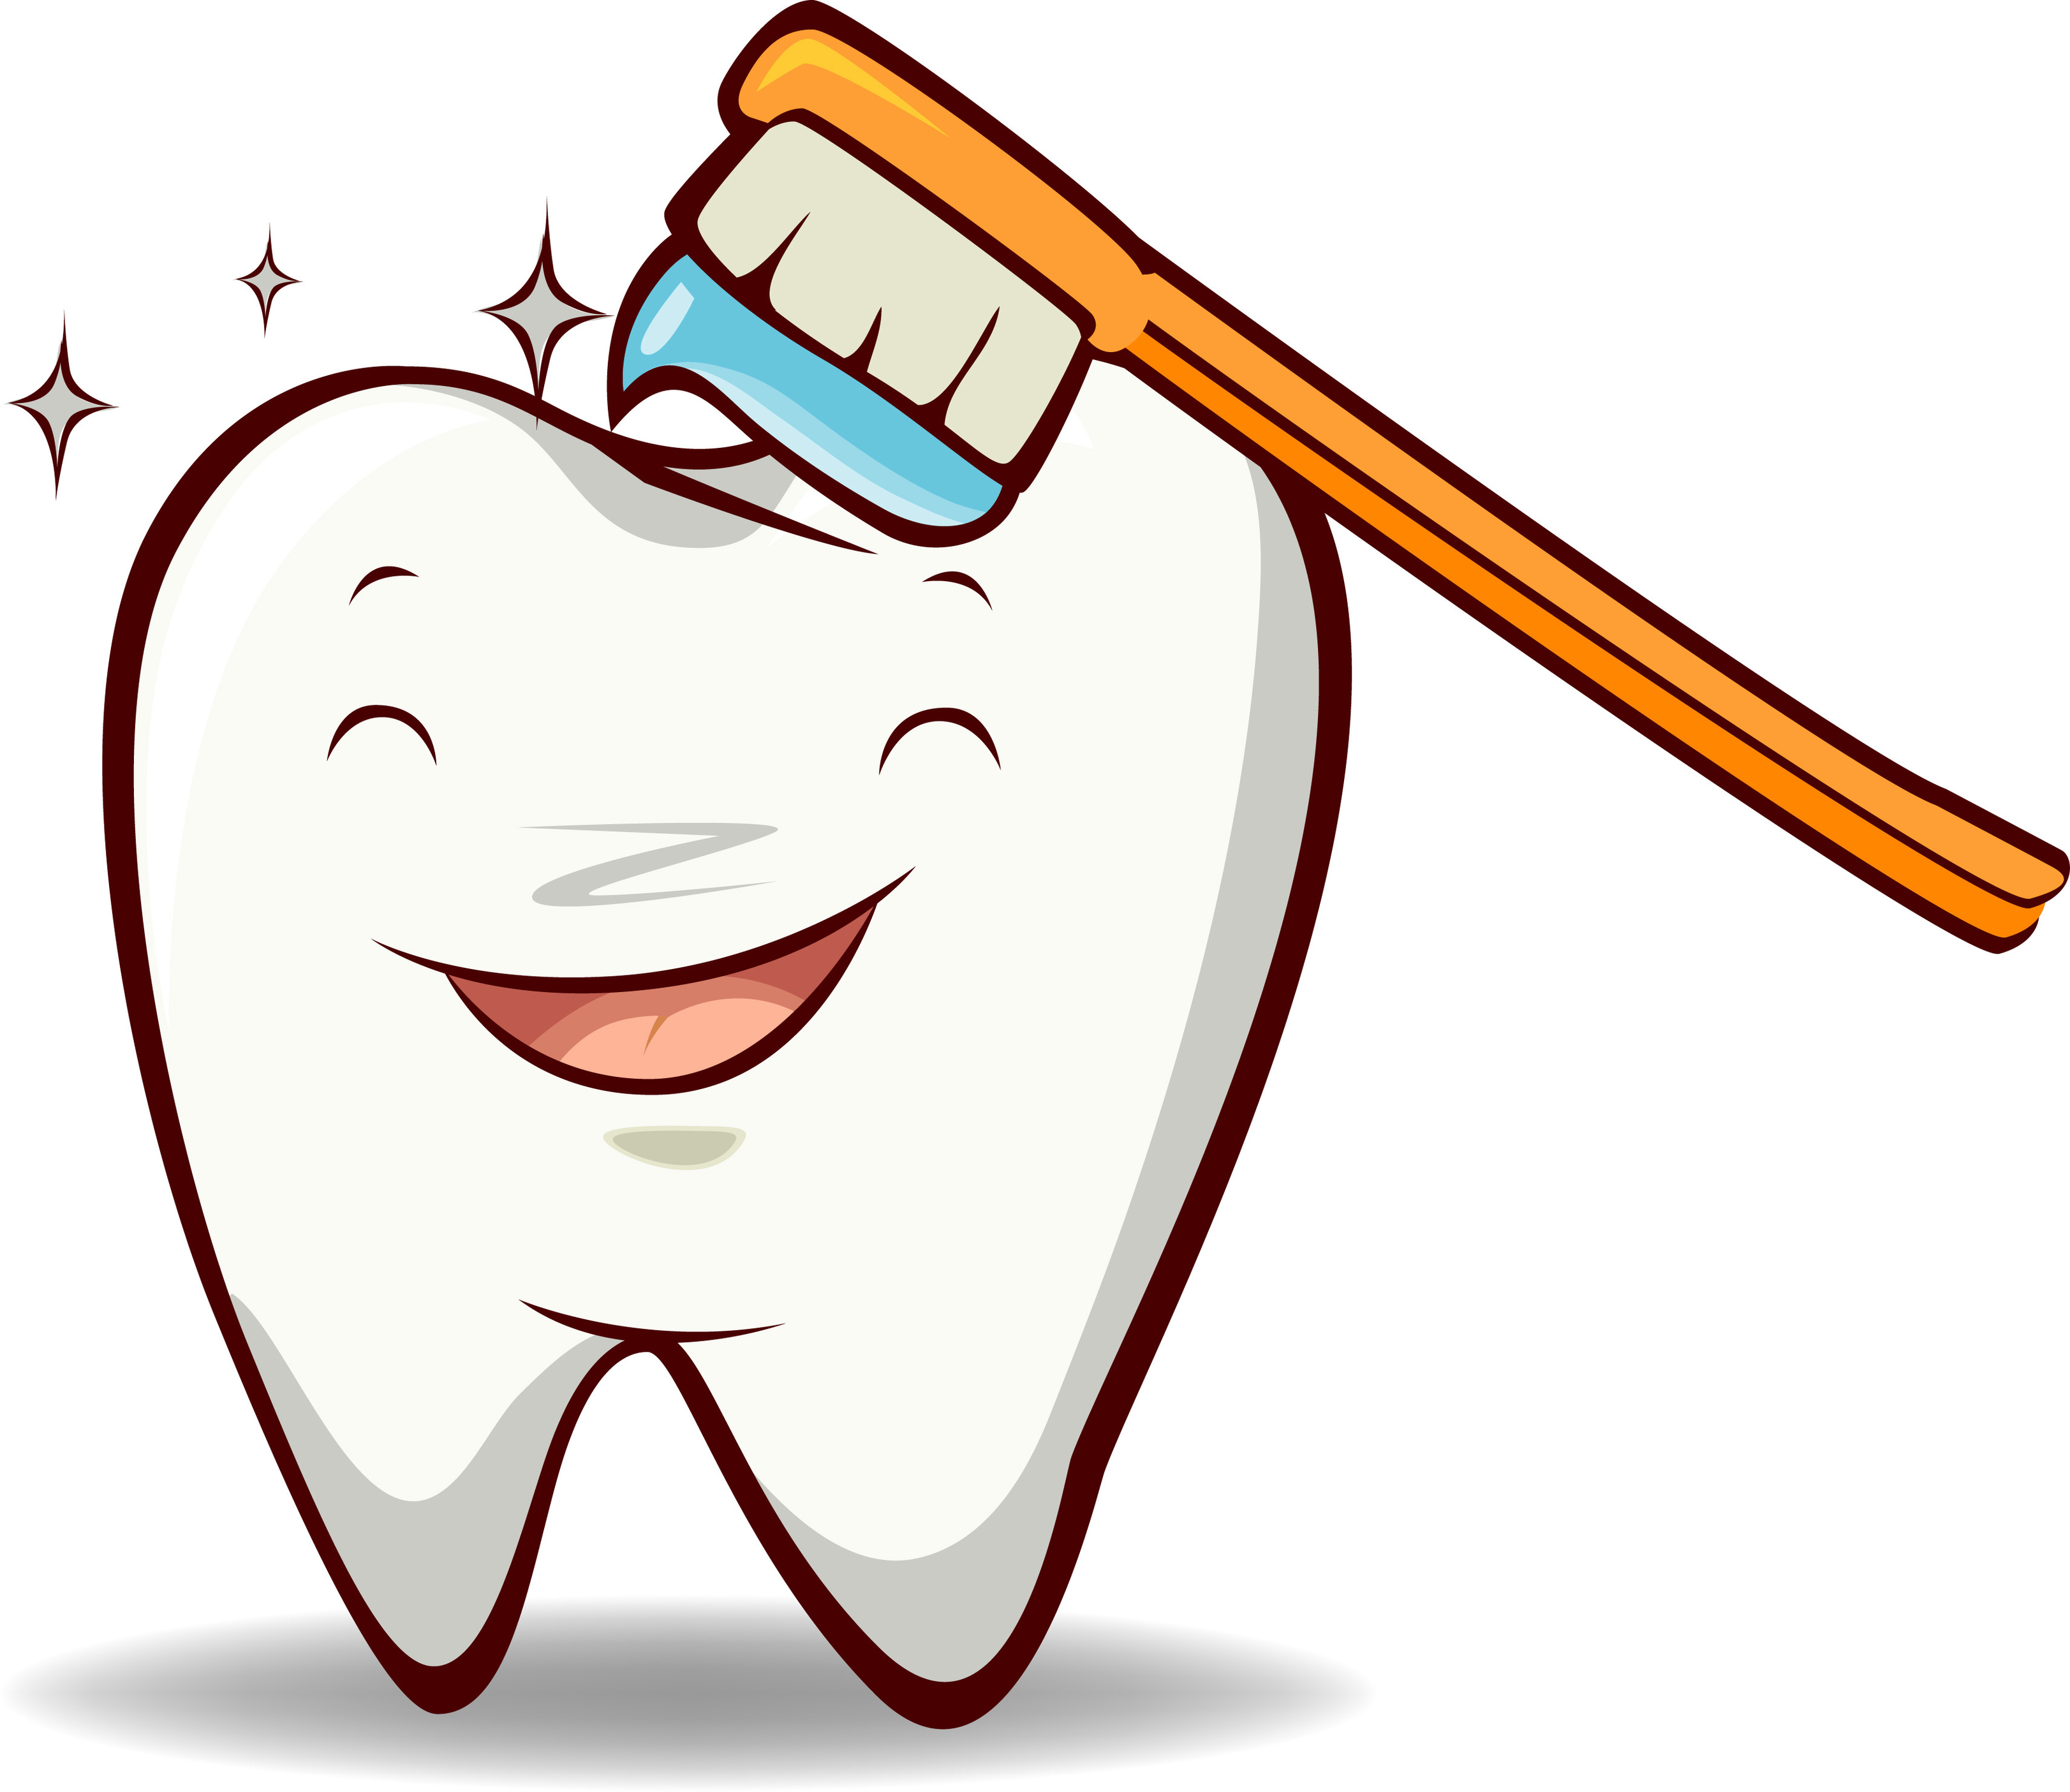 Free Dental Borders Cliparts, Download Free Clip Art, Free.